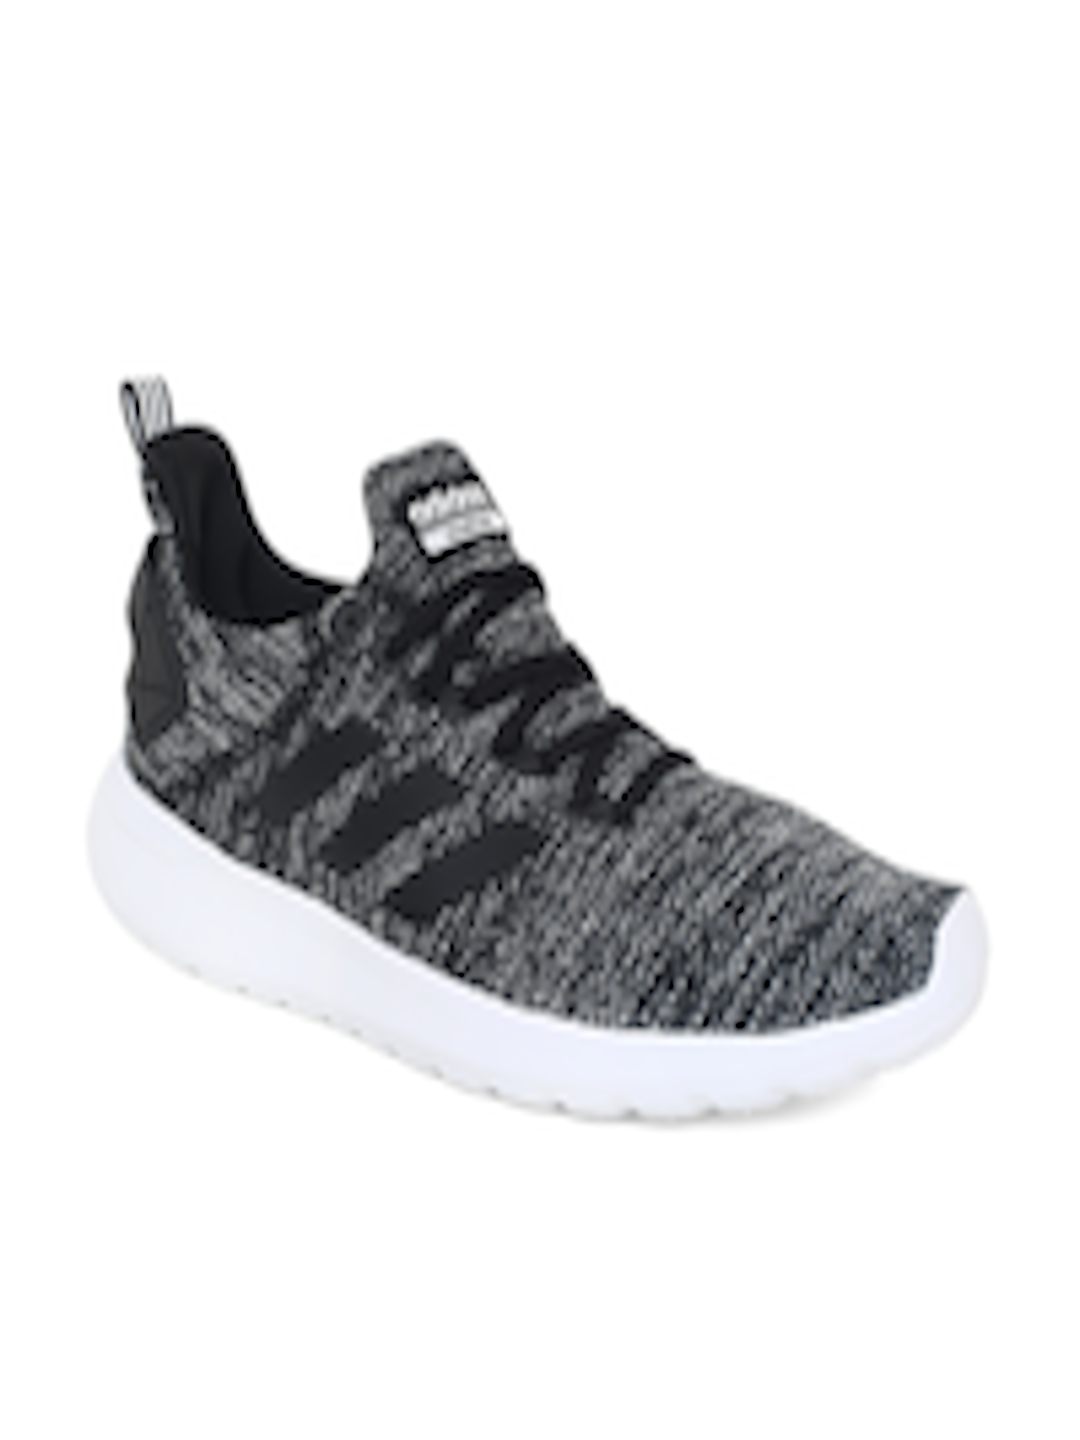 542d3703067b82 Buy ADIDAS Men Black   Grey Lite Racer Byd Running Shoes - Casual Shoes for  Men 2444426